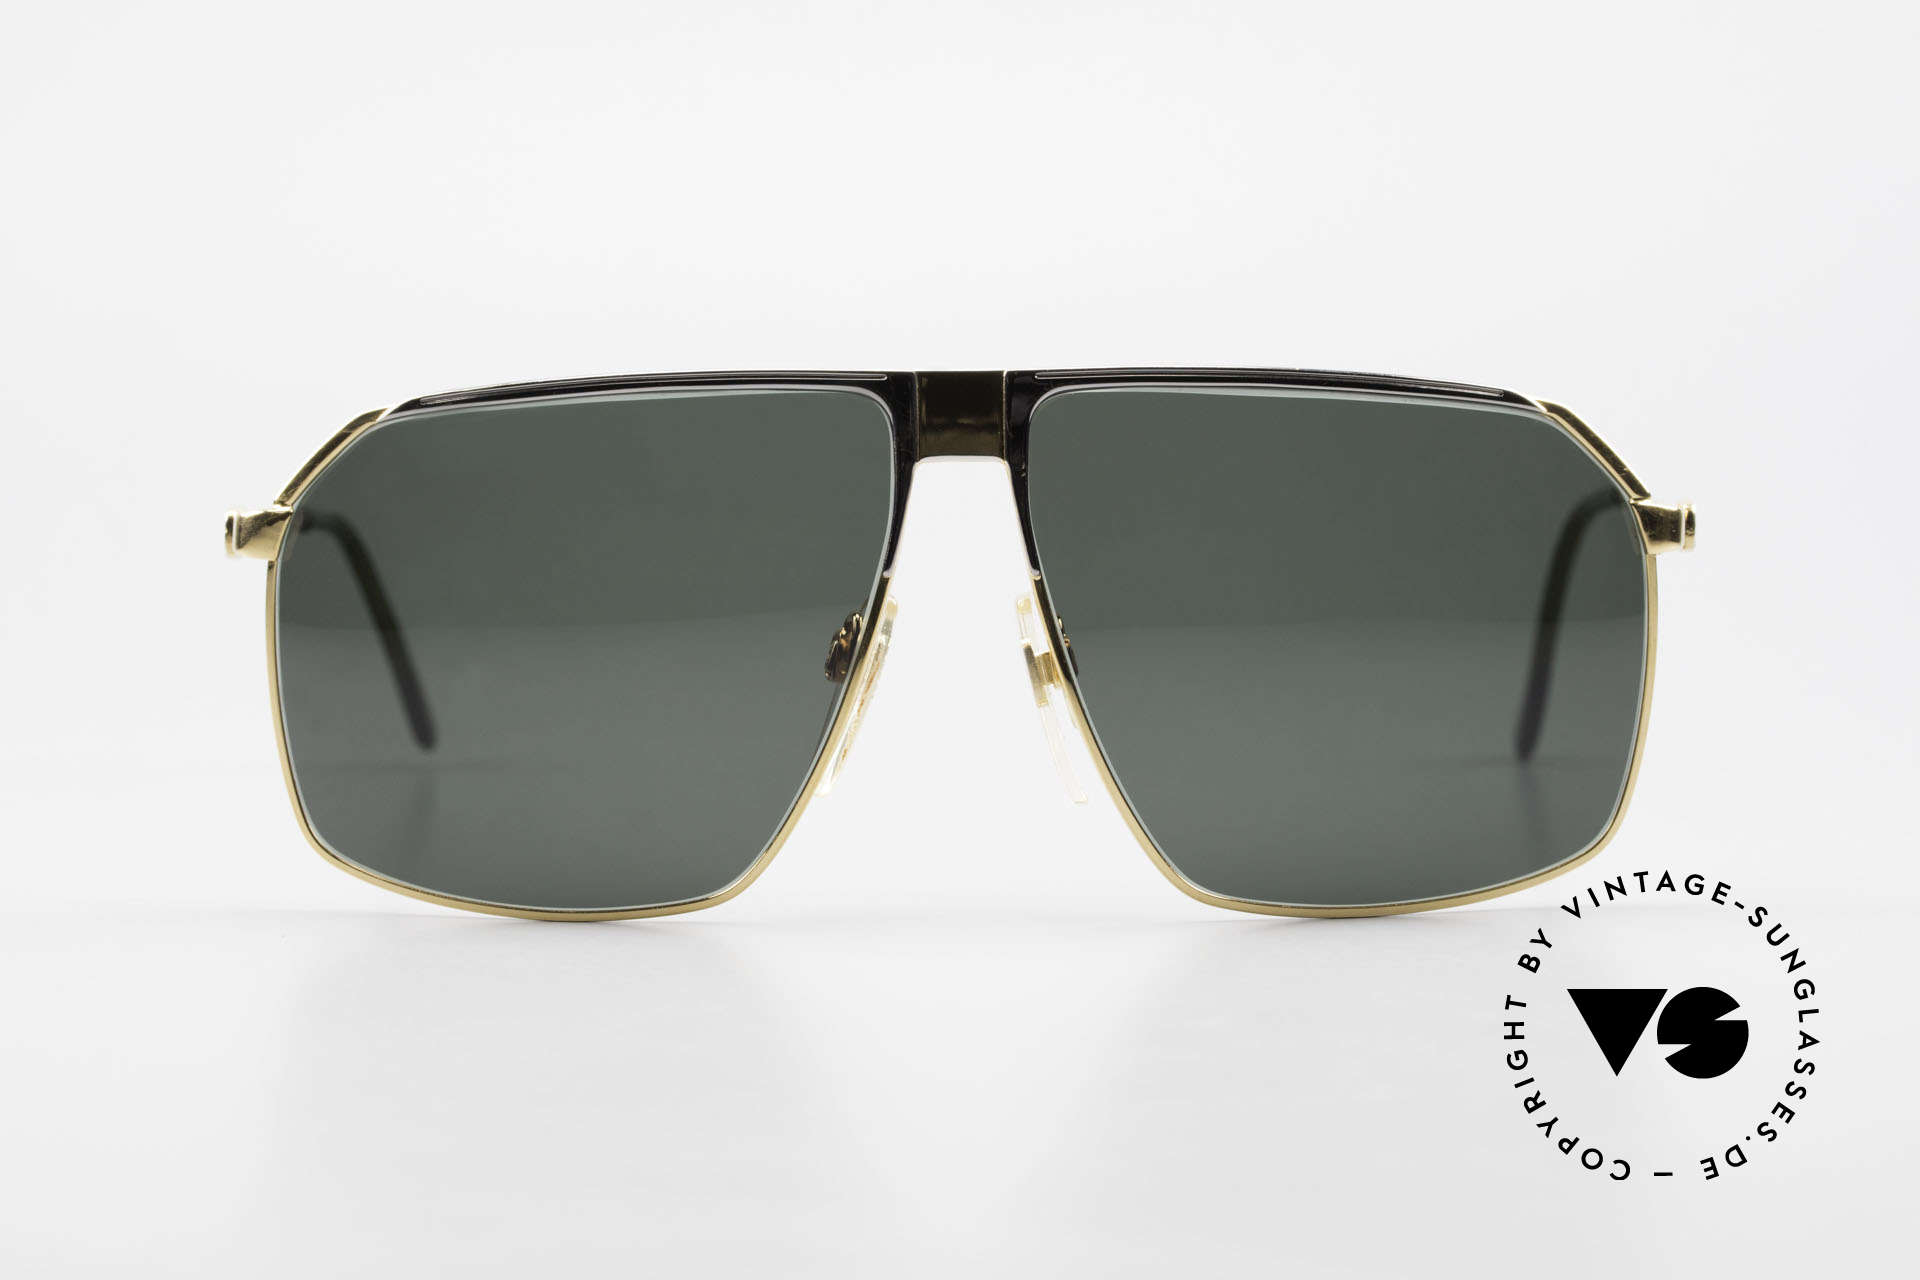 Gucci GG41 22kt Gold-Plated Sunglasses, the most wanted vintage 80's sunglasses by GUCCI, Made for Men